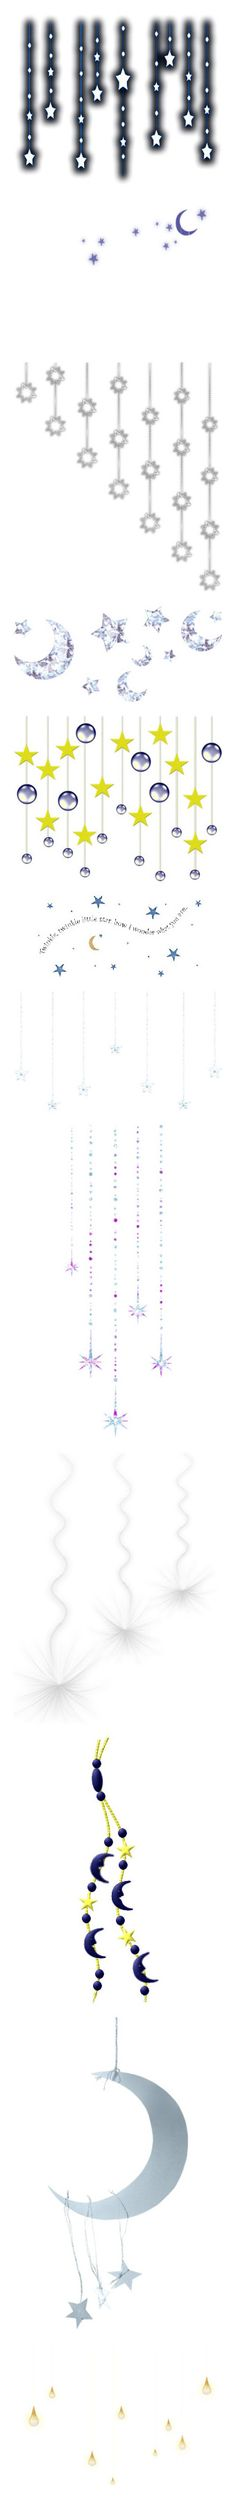 """""""moons & stars hanging items as well"""" by cloezplace ❤ liked on Polyvore featuring effects, stars, text, decor, lights, christmas, fillers, christmas lights, backgrounds and embellishments"""